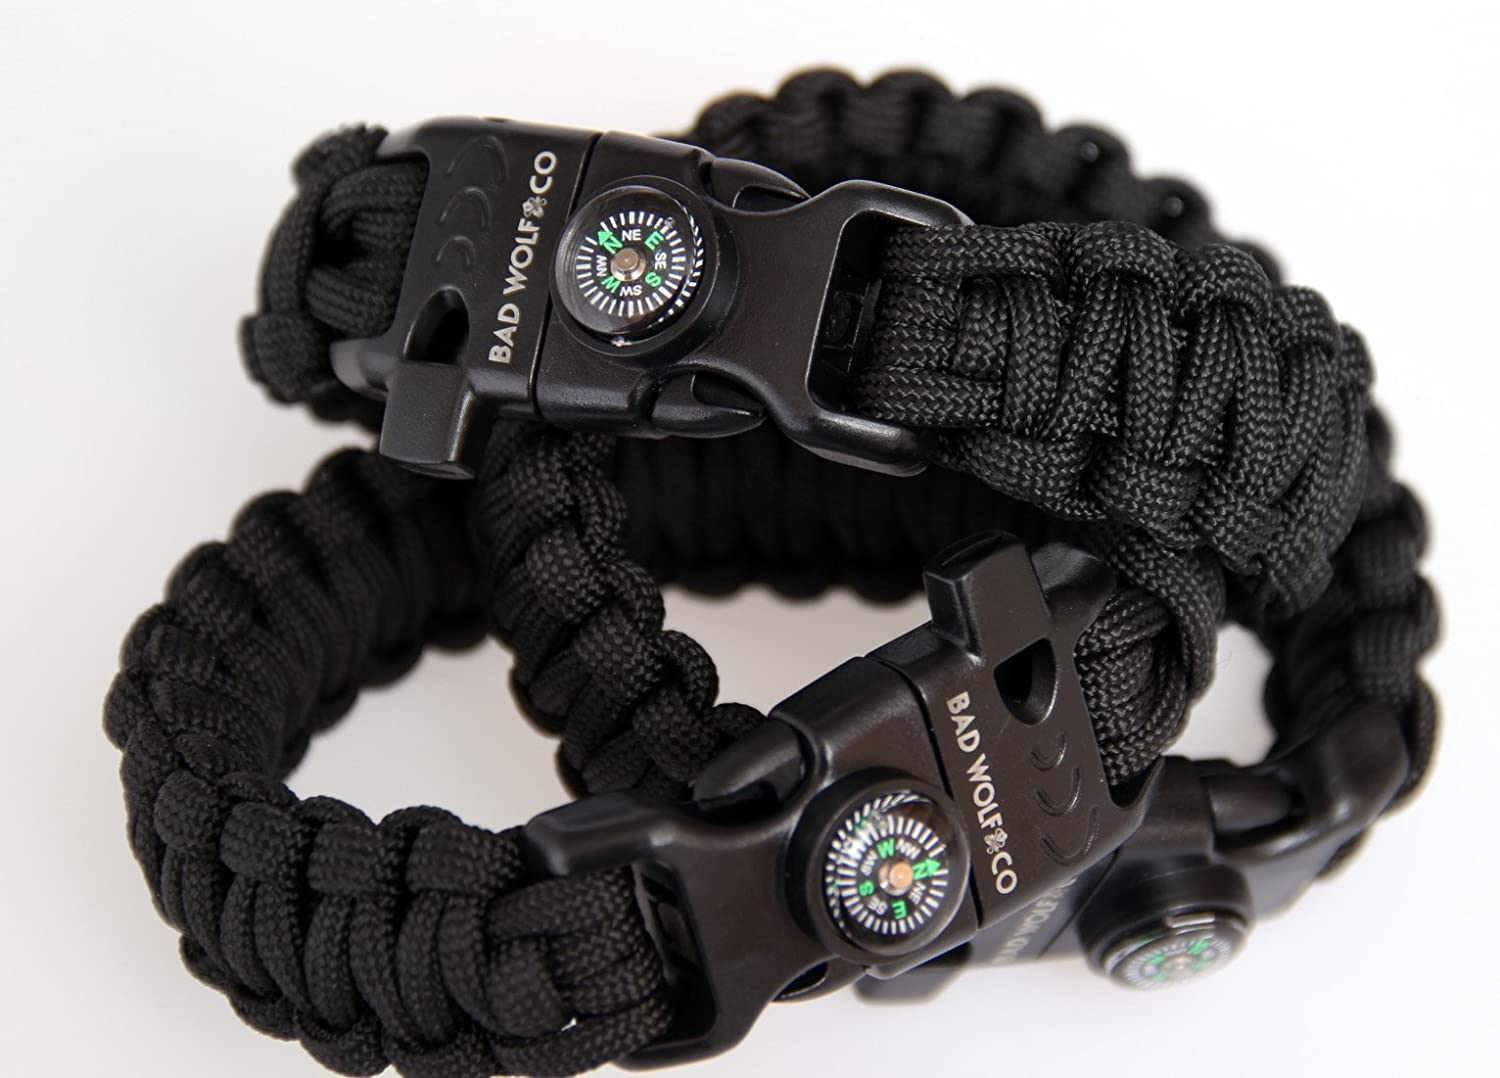 Paracord Survival Bracelet - Fire Rod & Scraper, Whistle & Compass All-In-One Survival Gear Kit Multi Functional Parachute 550 Cord Type III 7 Strand Paracord Design For Hiking & Travelling